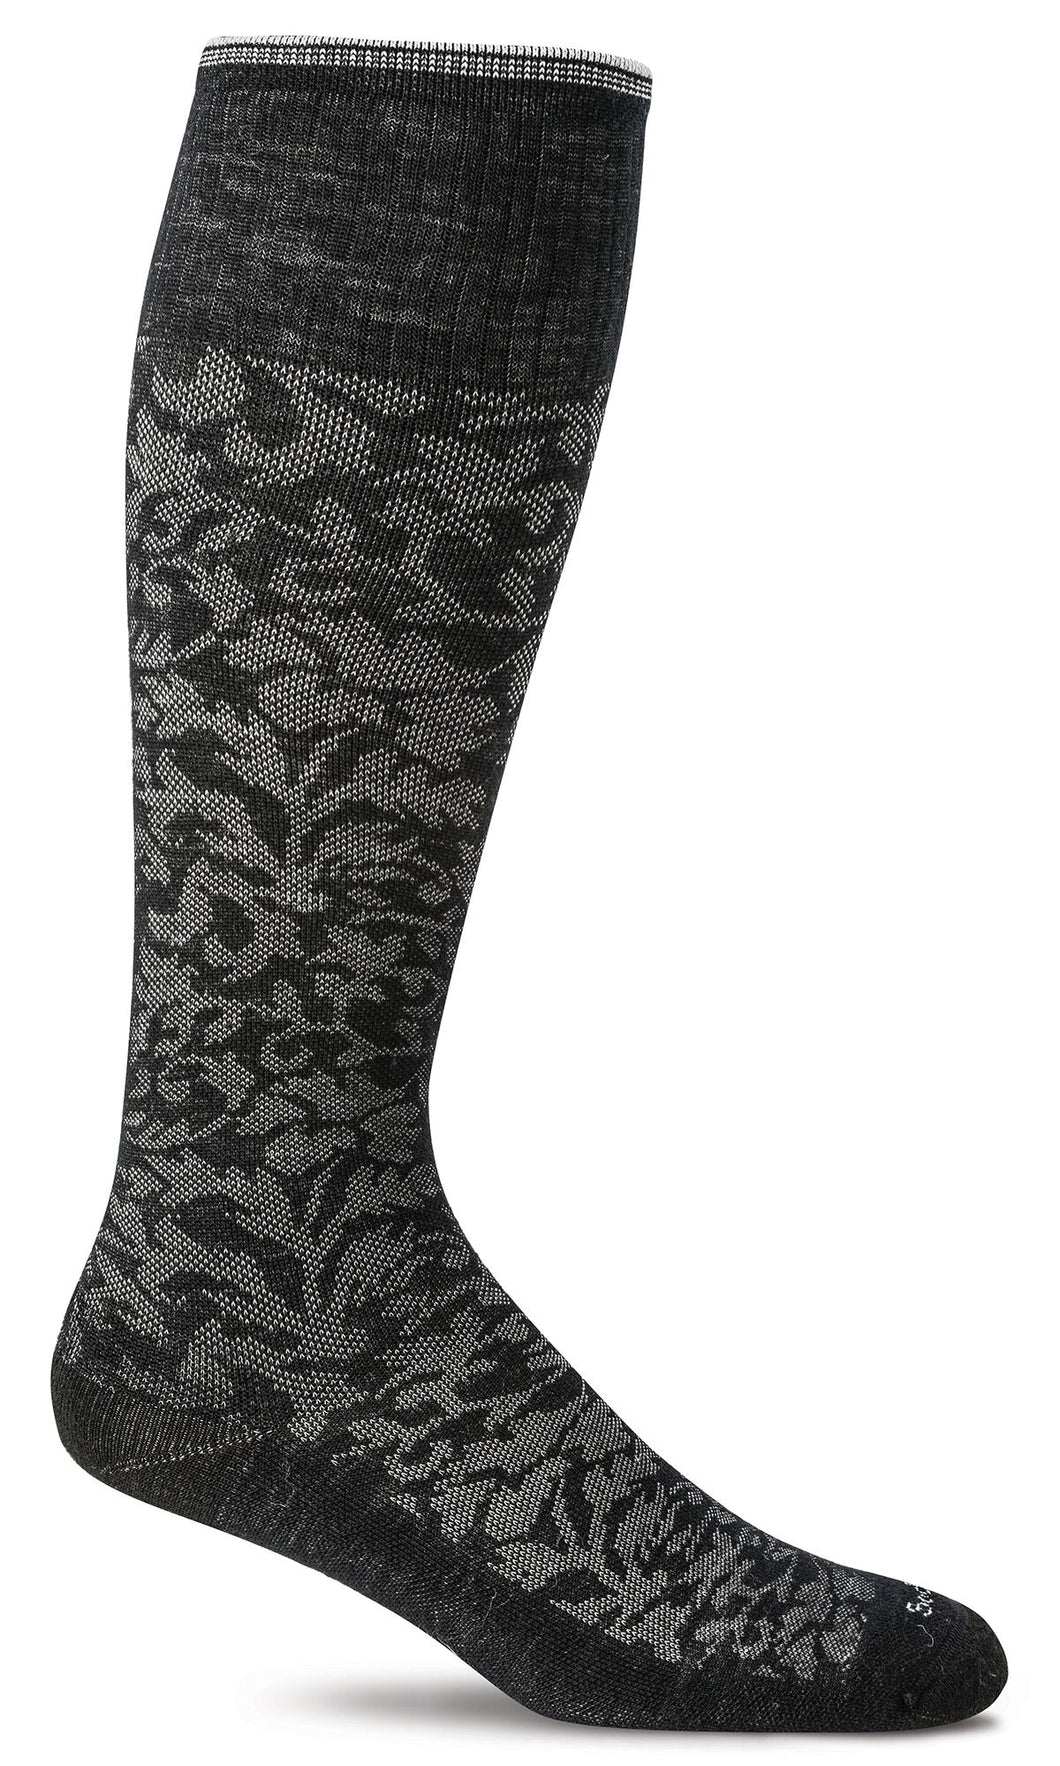 Sockwell Black Women's Damask Socks